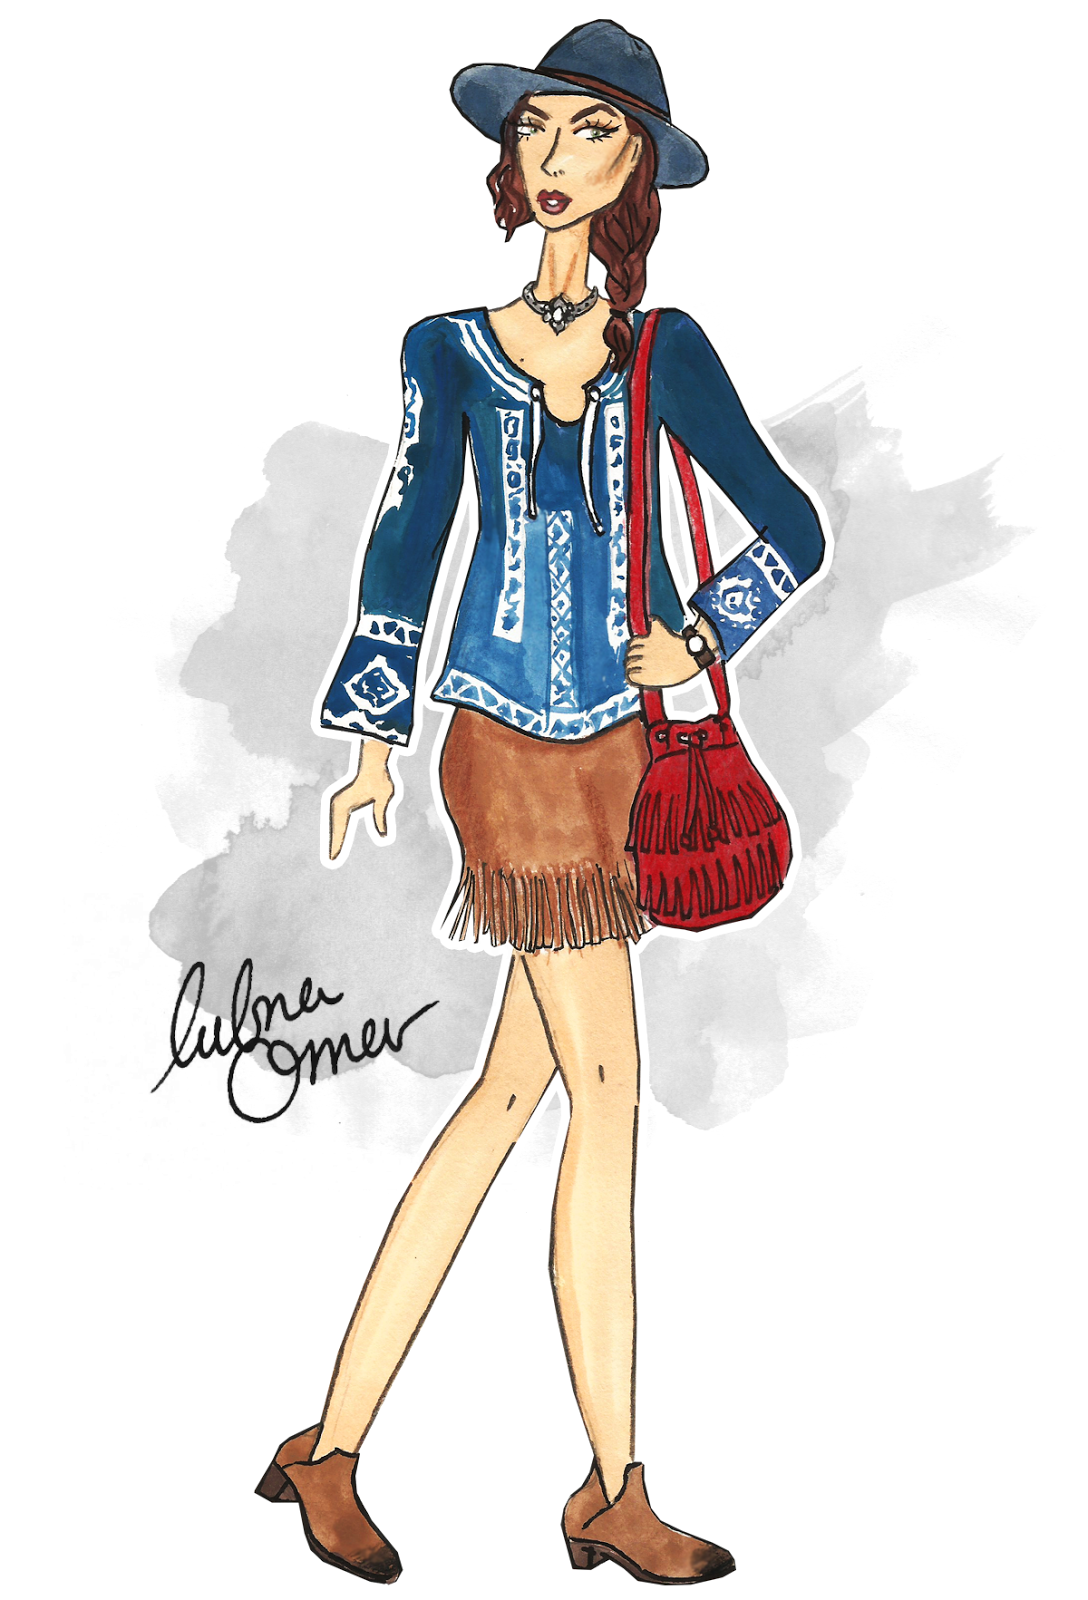 zaful reviews boho outfit inspiration illustration by lubna omar